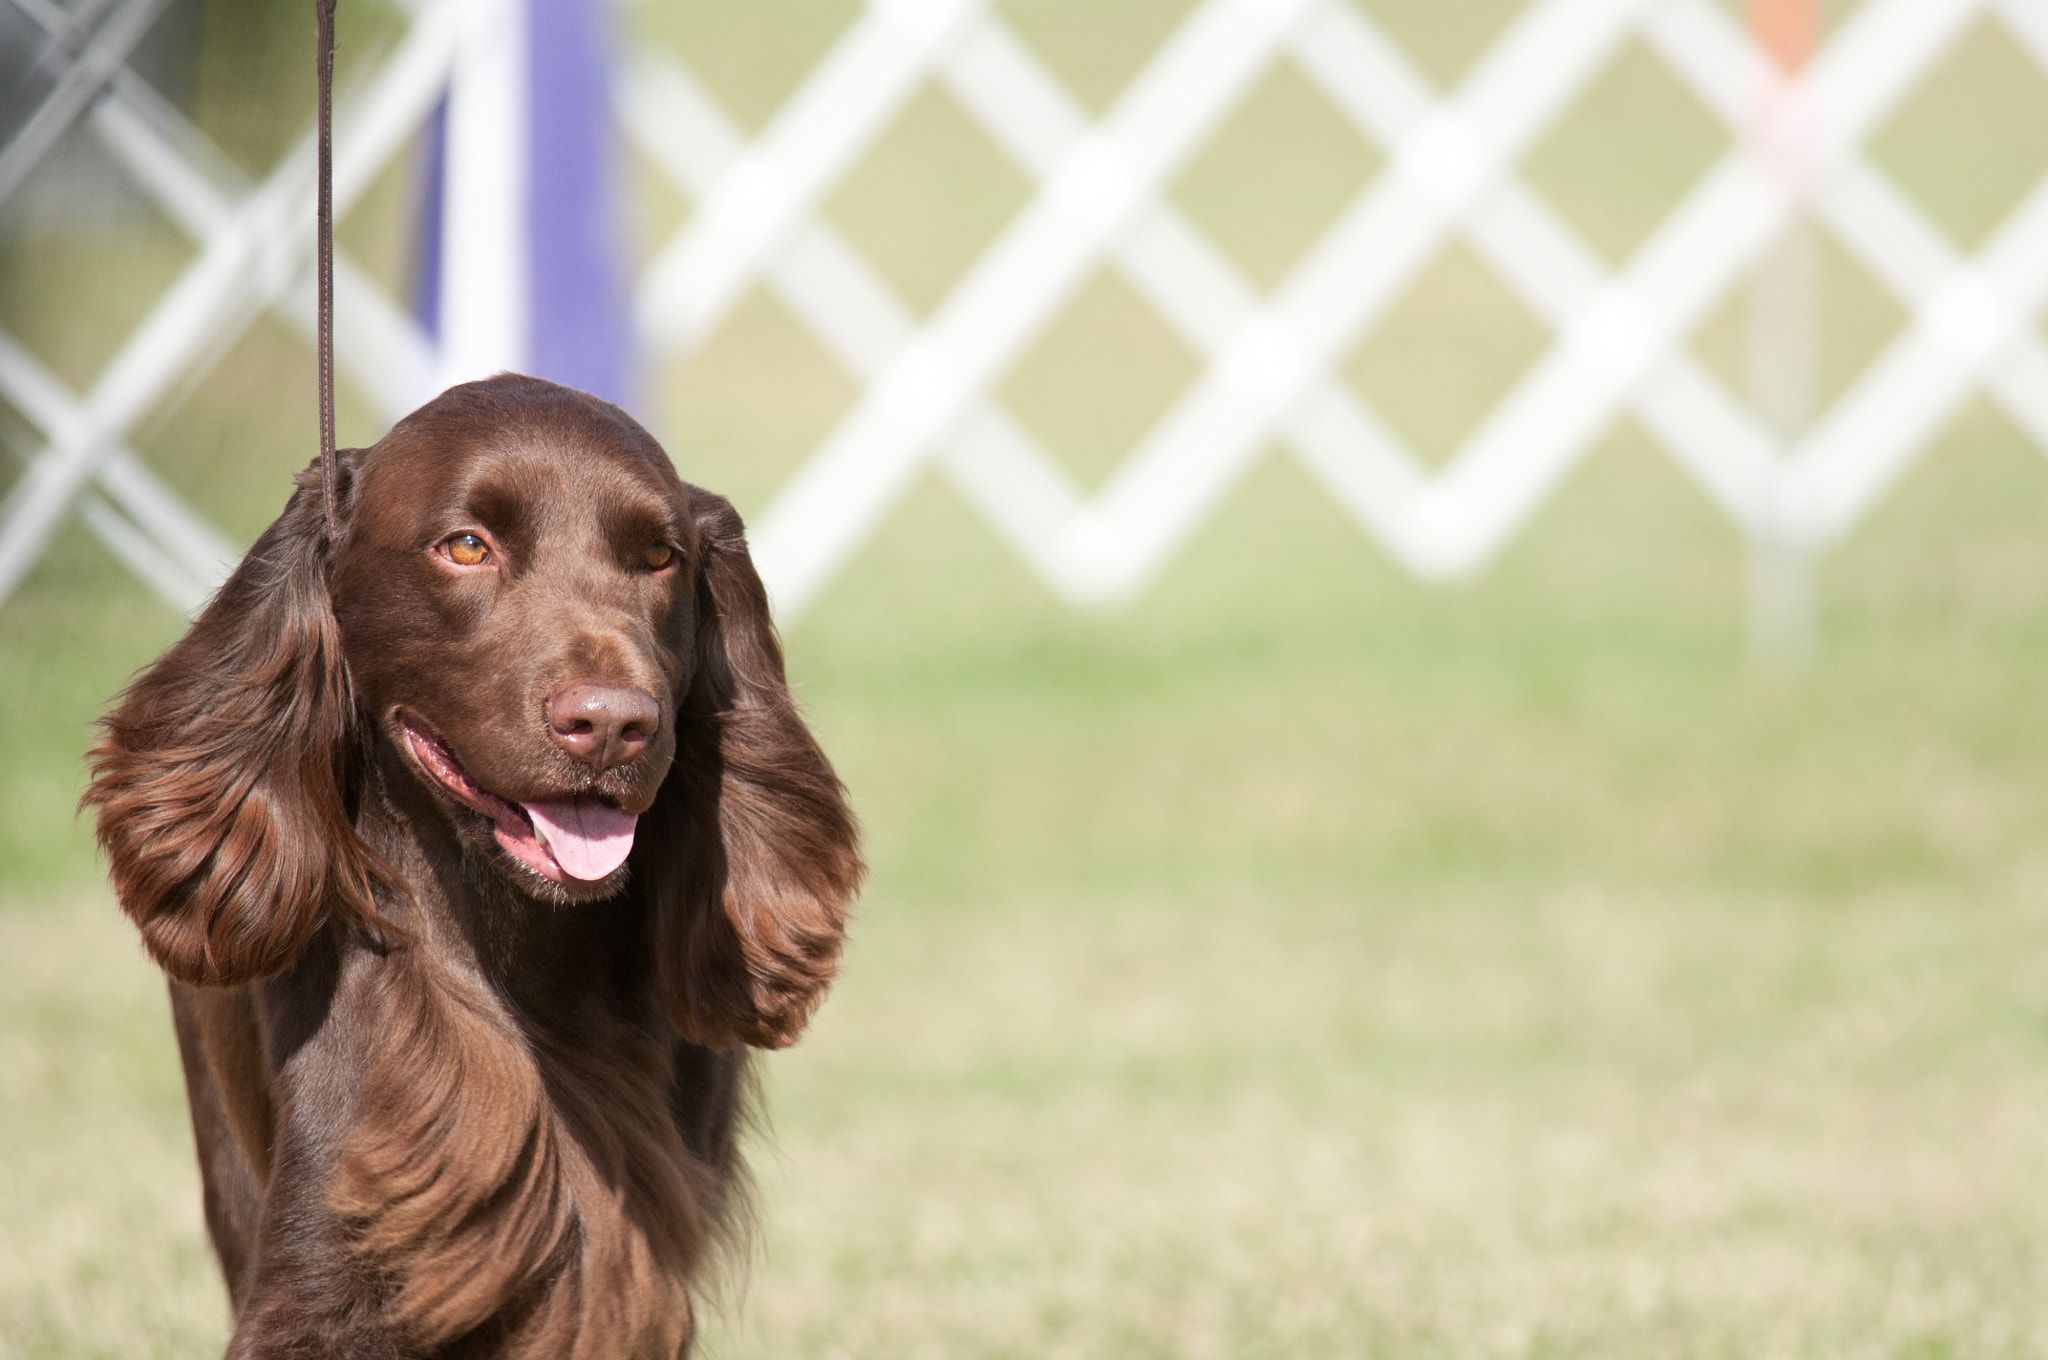 Field Spaniel Field Spaniel At Wine Country Circuit Dog Show At Sampson State Park In Upstate Ny In 2020 Field Spaniel Spaniel Dogs